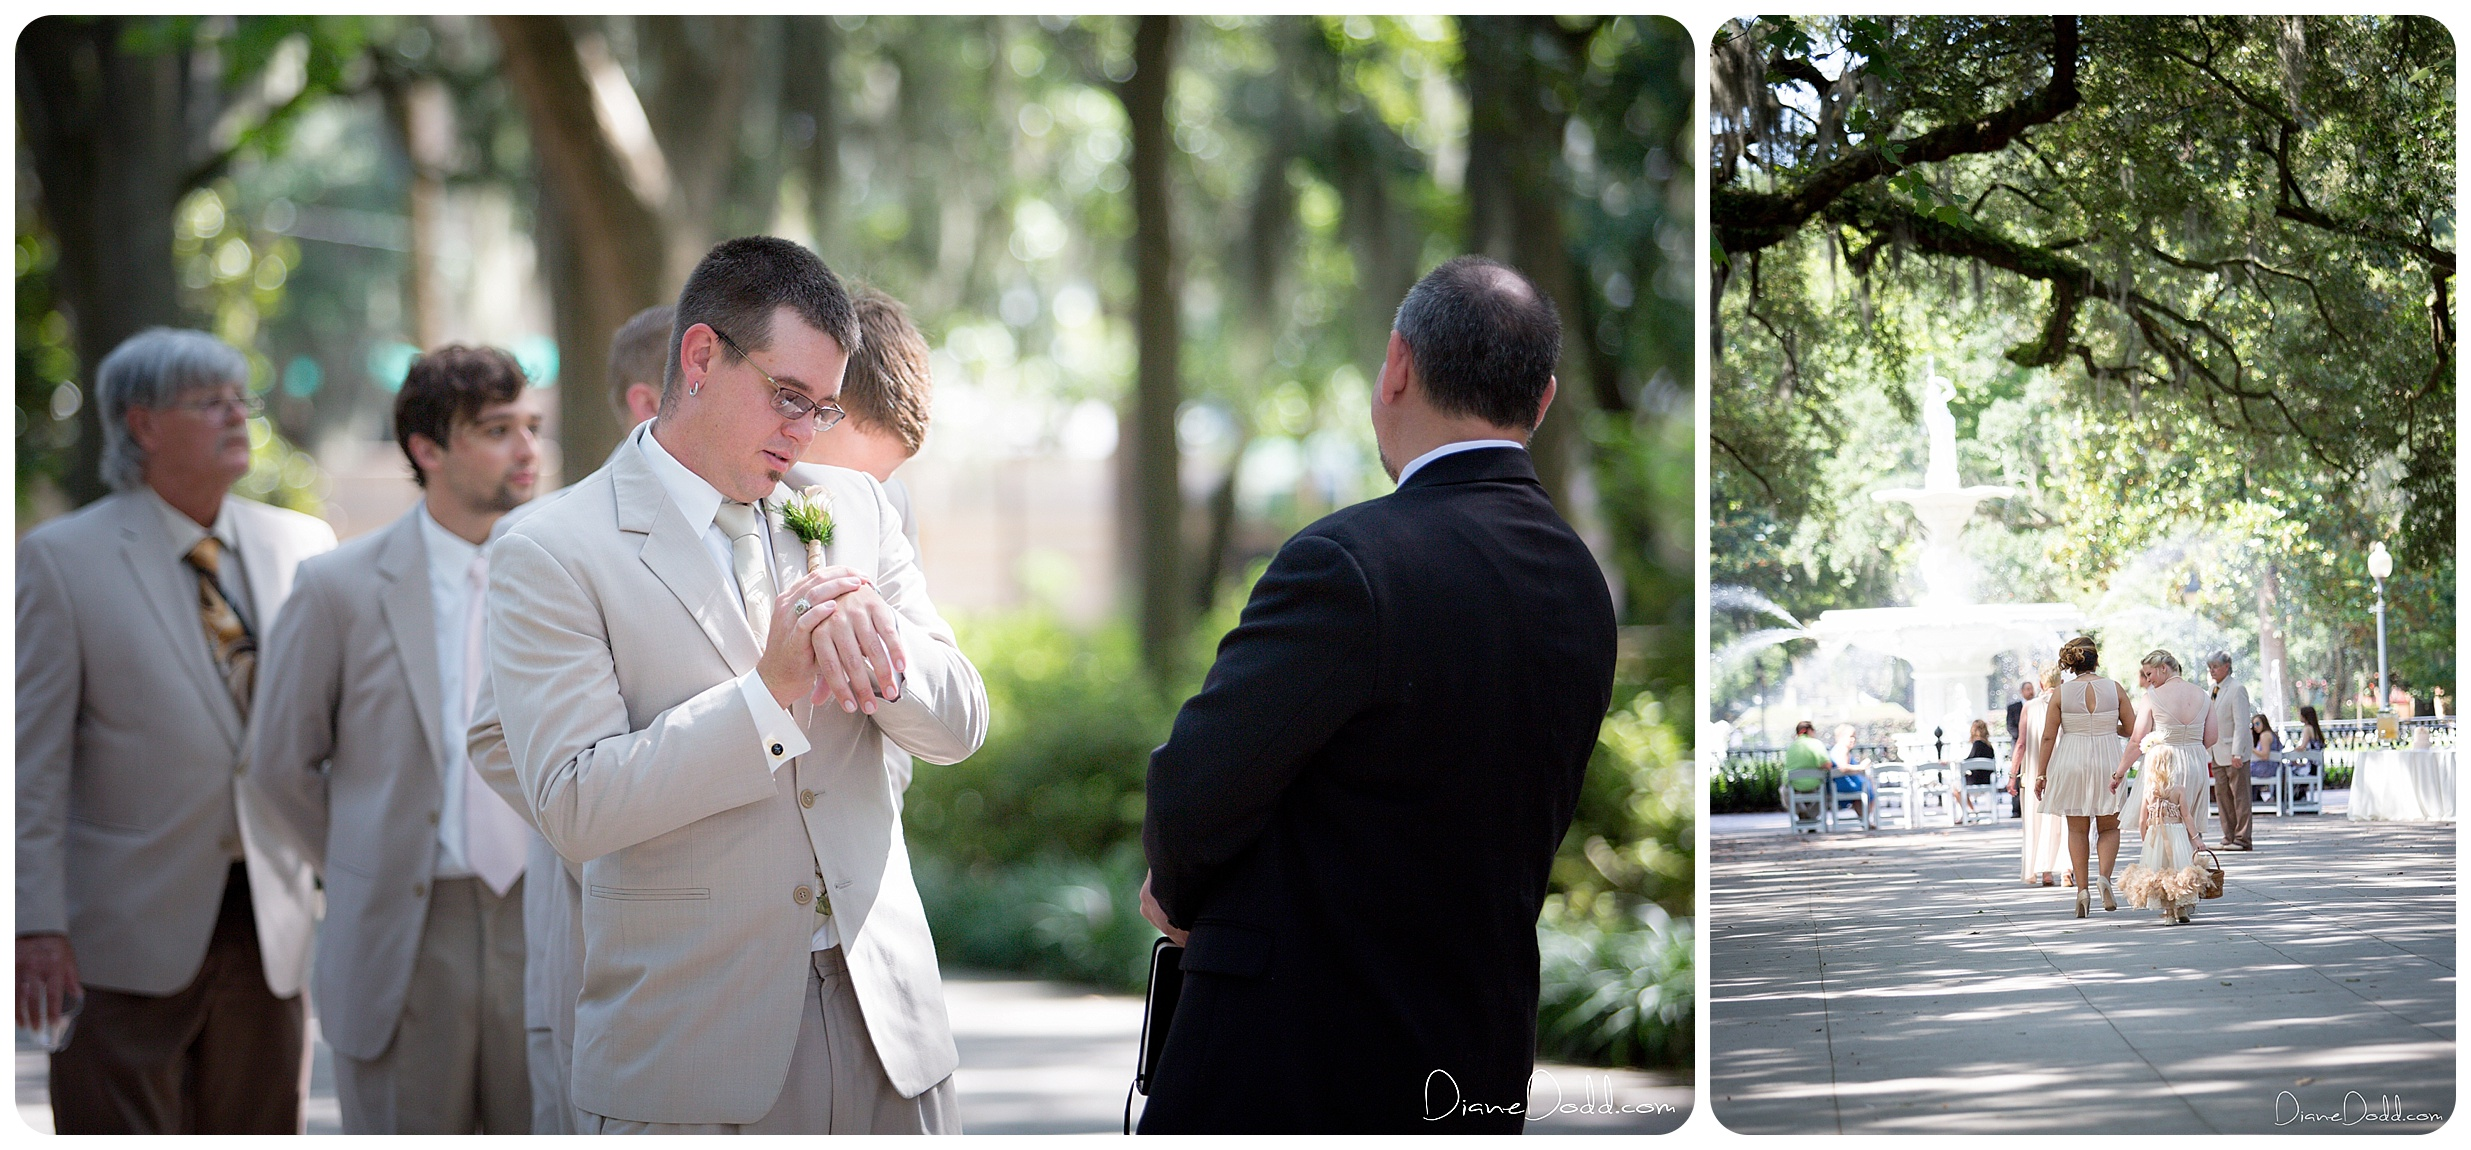 savannah-elopement-photography-175.jpg